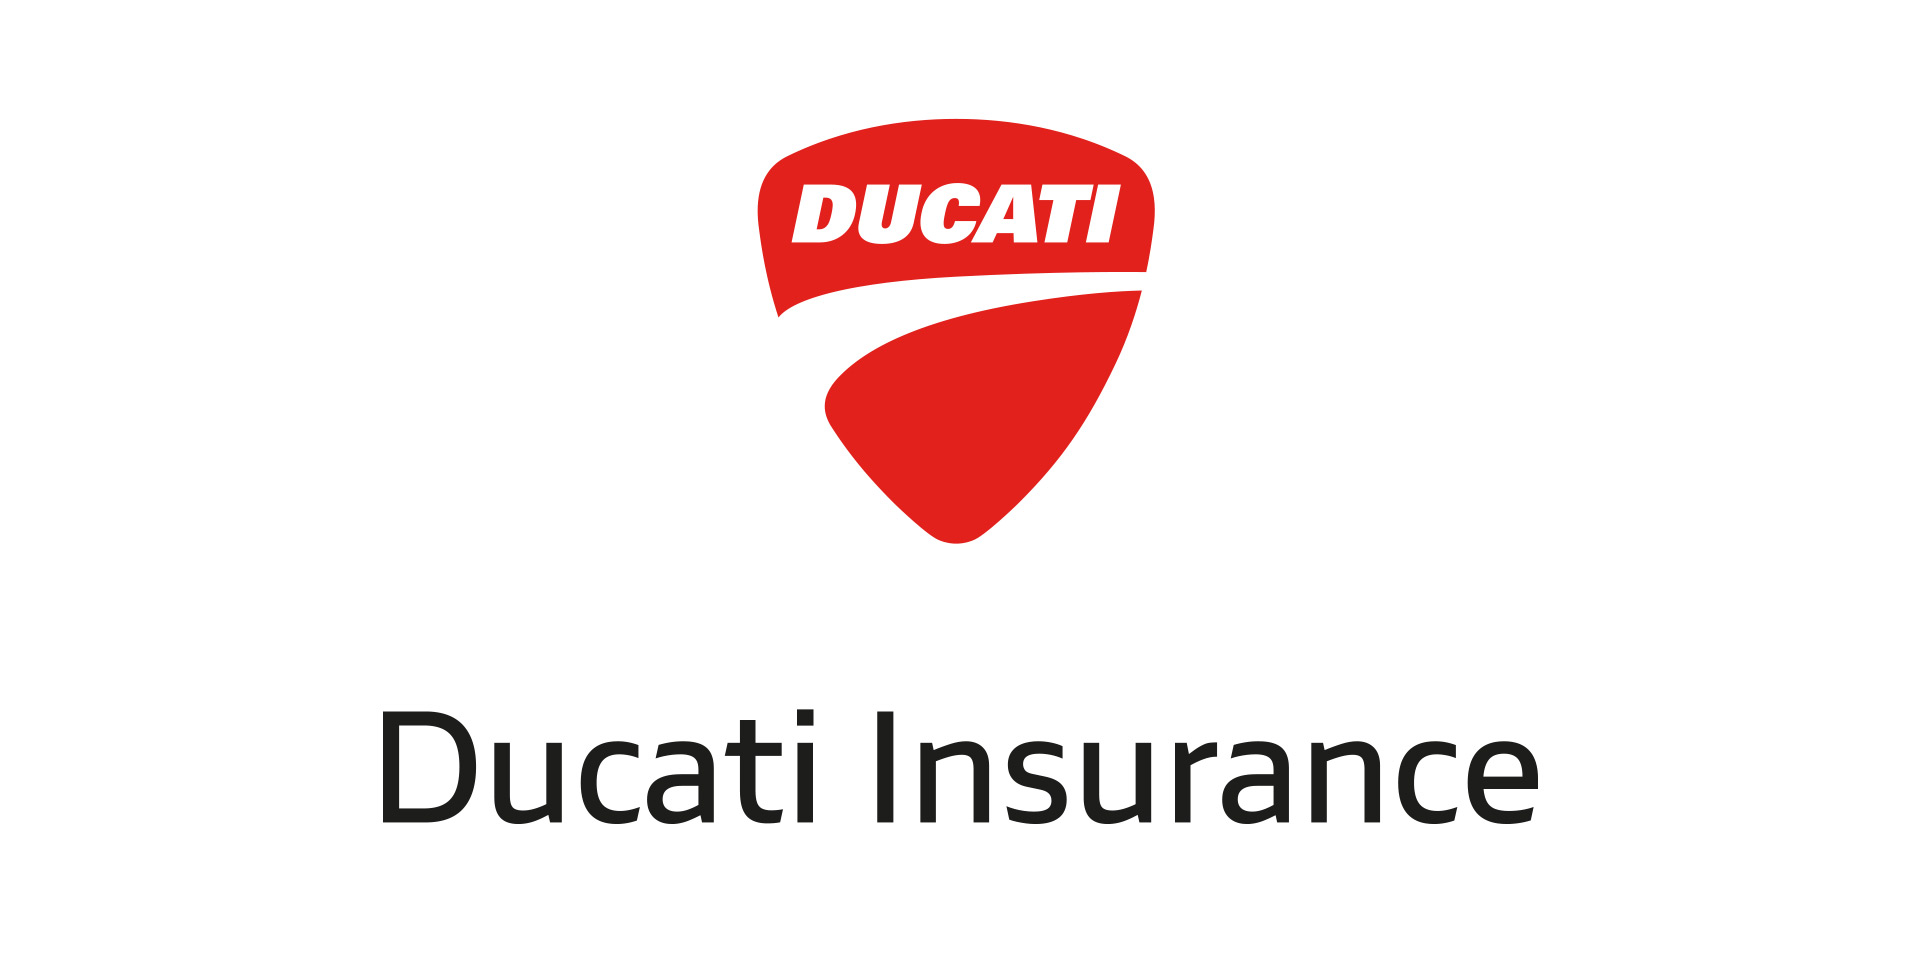 Ducati Insurance Let Us Protect Your Passion